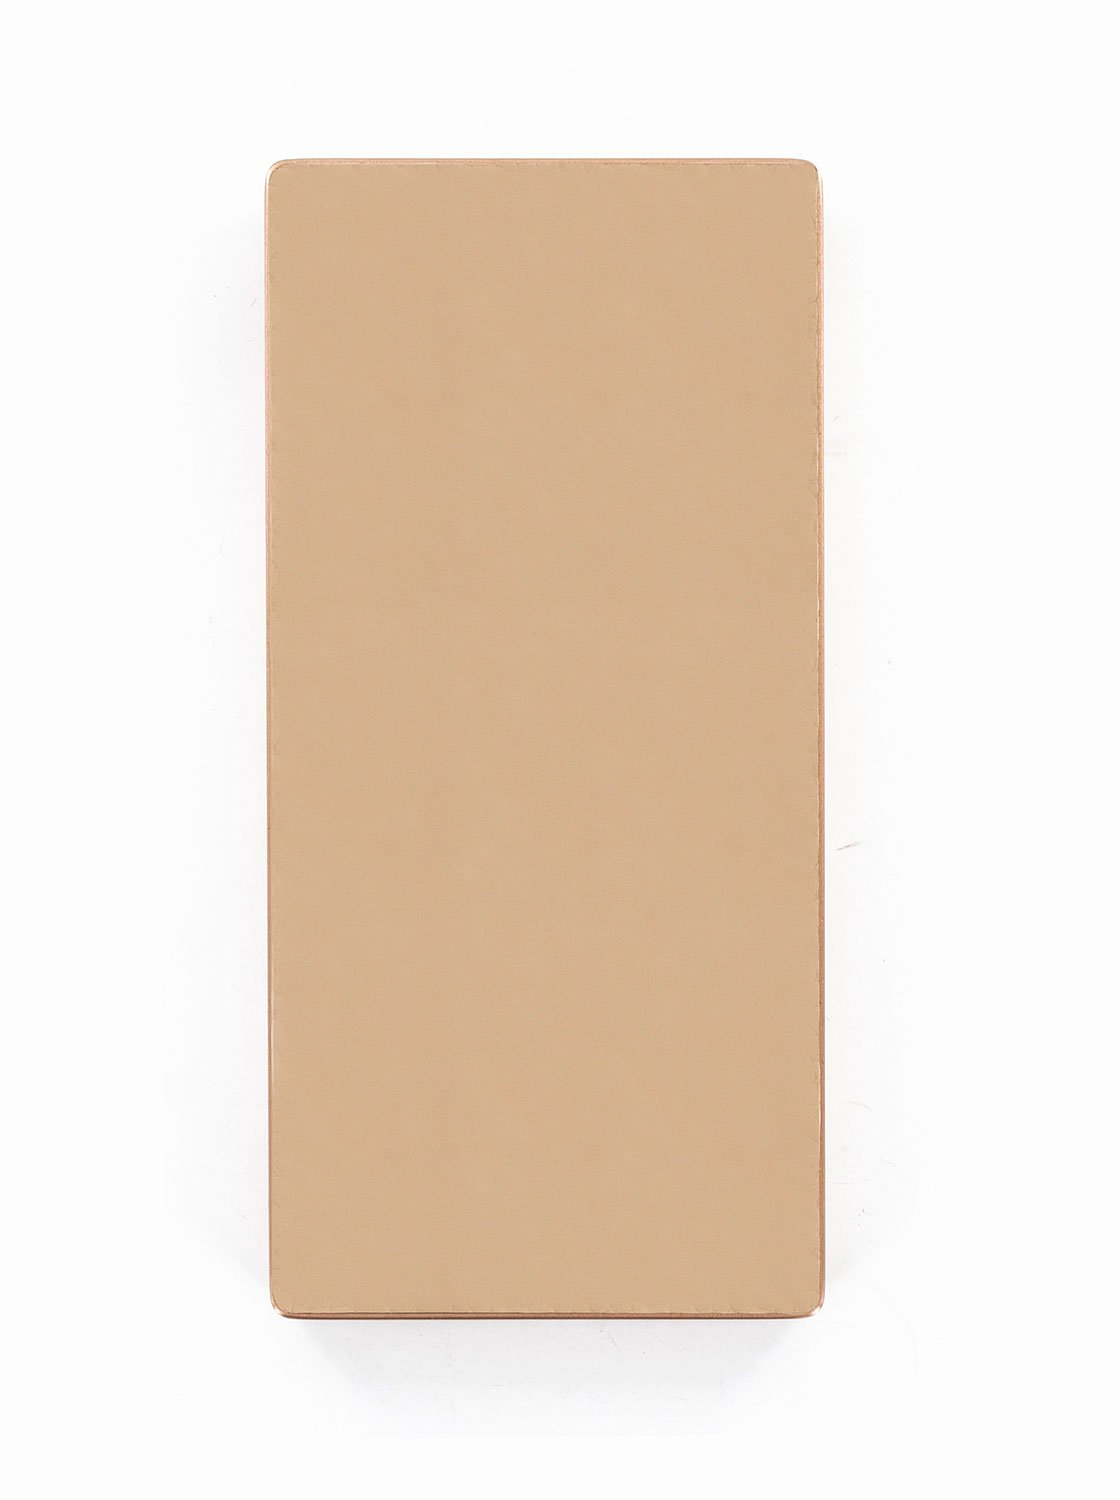 Back image of the Ted Baker Universal wireless charger in Taupe